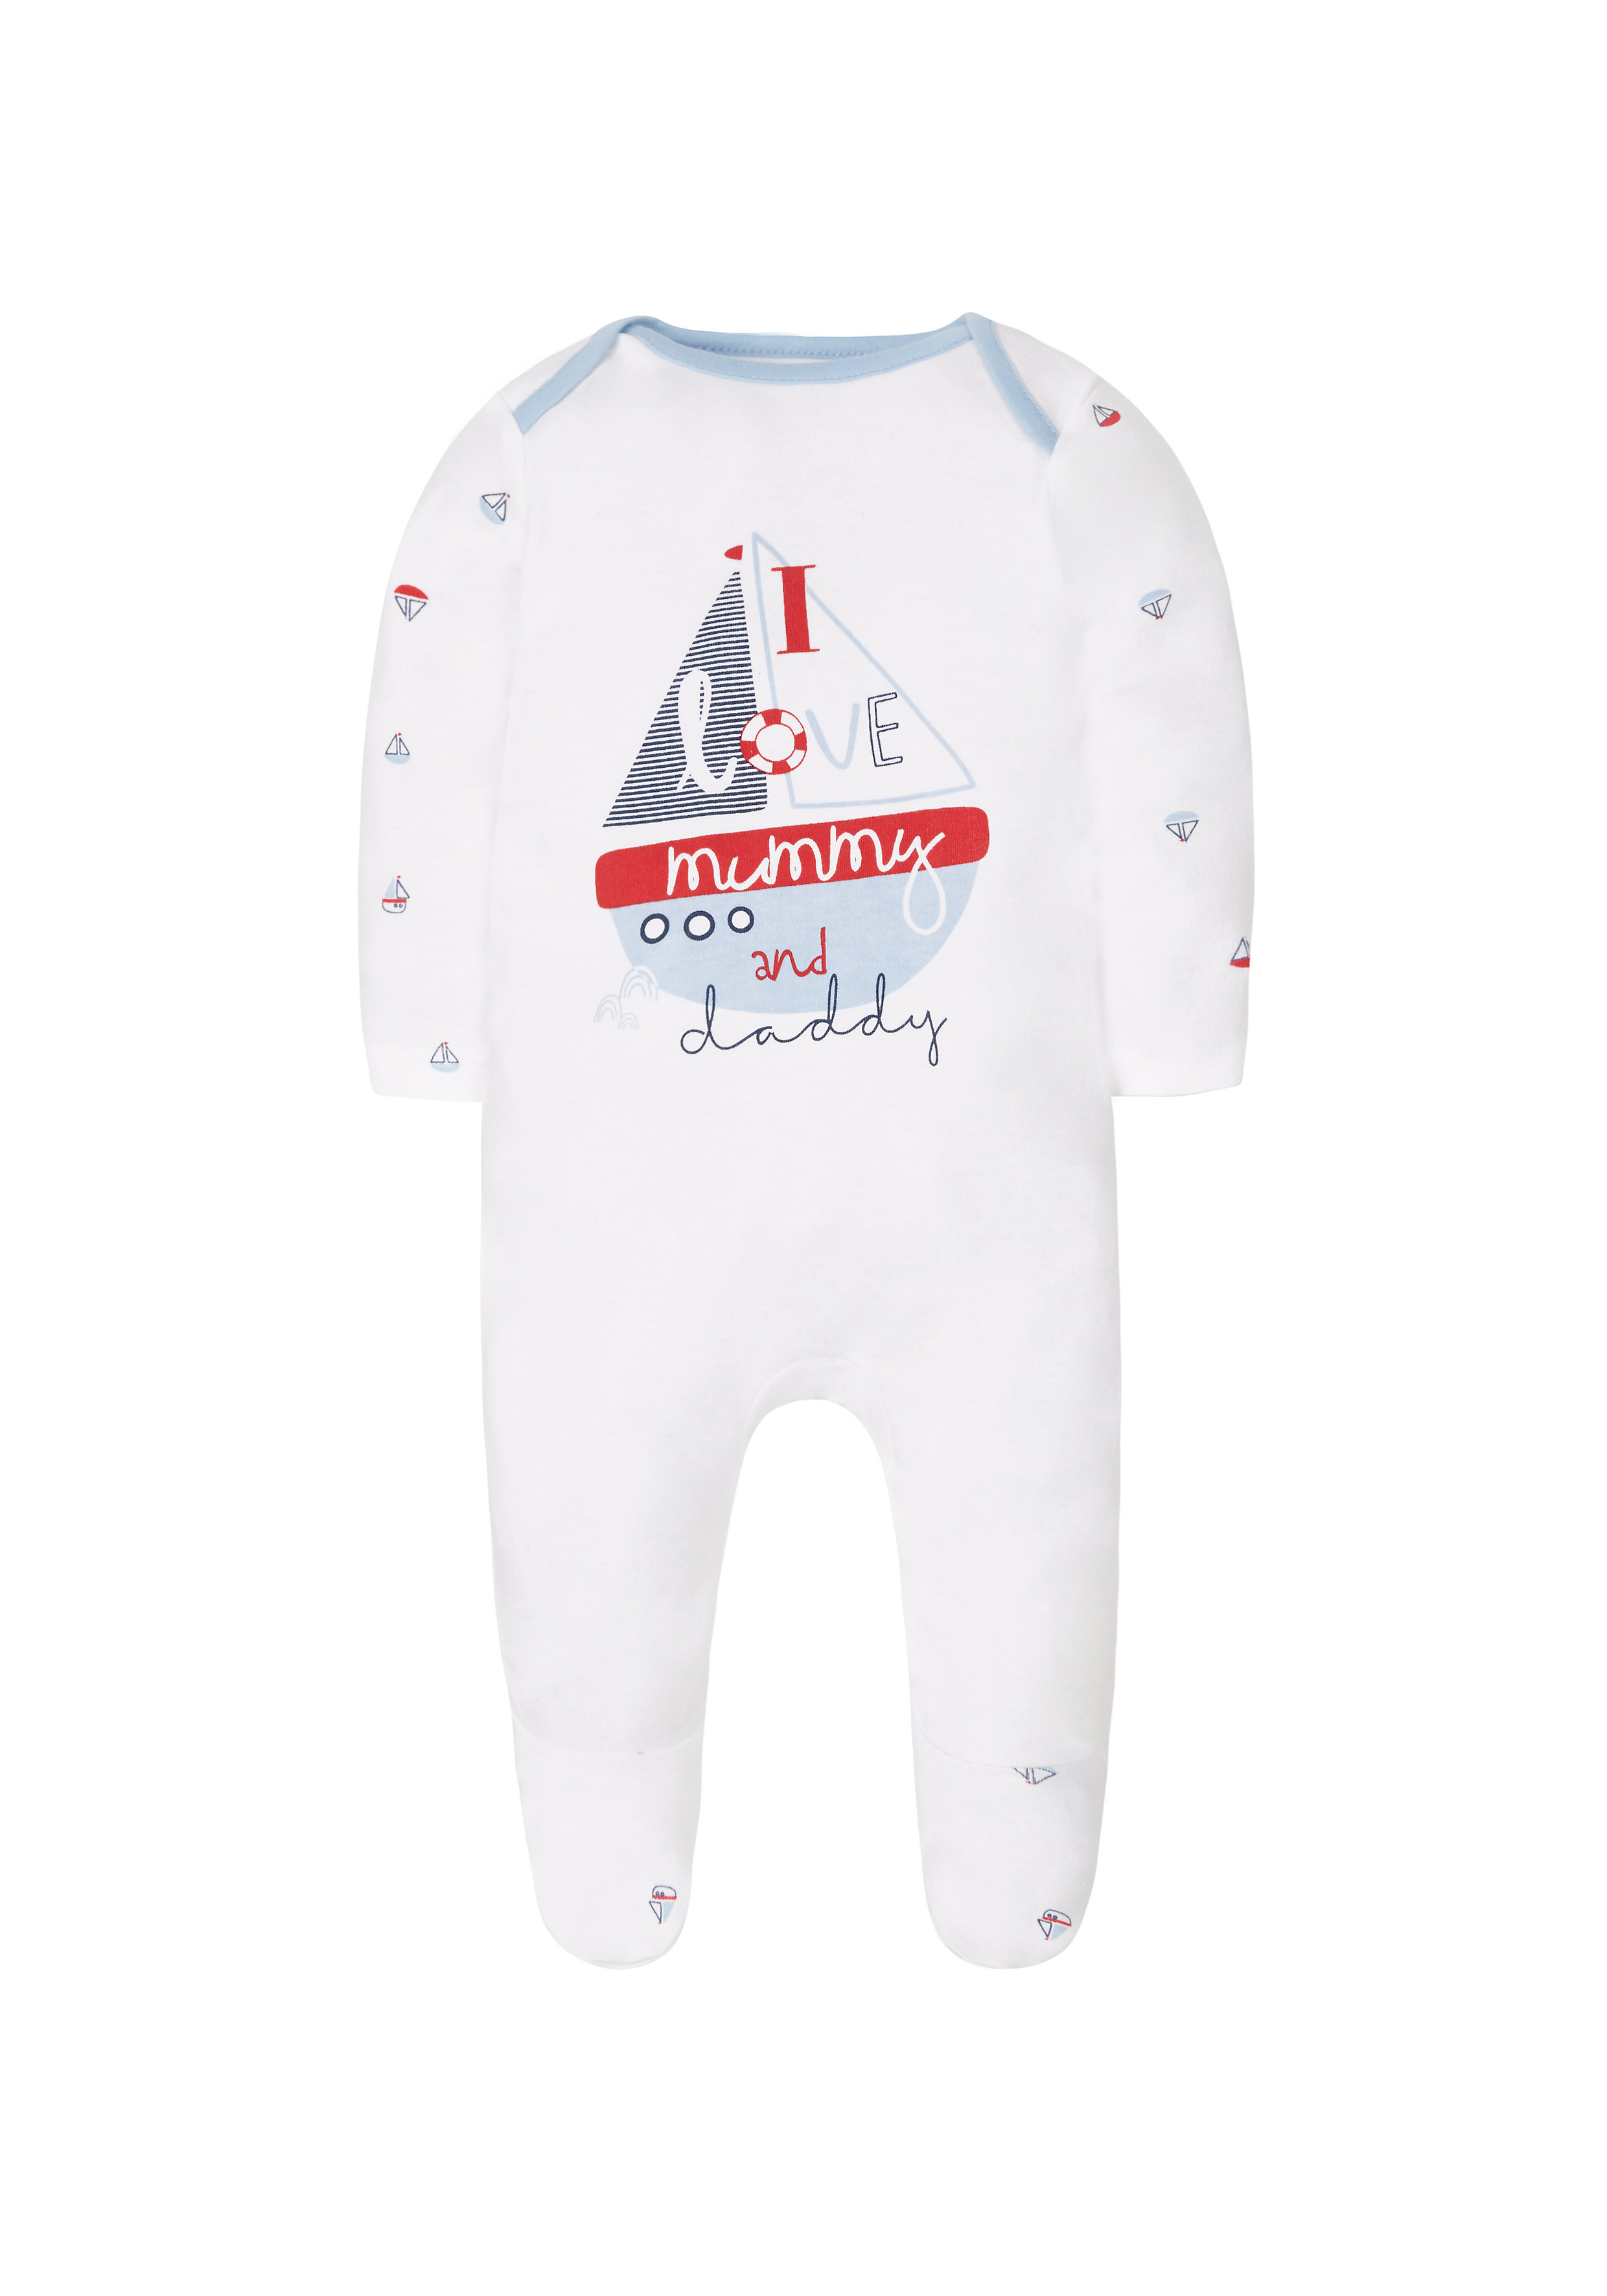 Mothercare | Boys Mummy And Daddy Romper - White